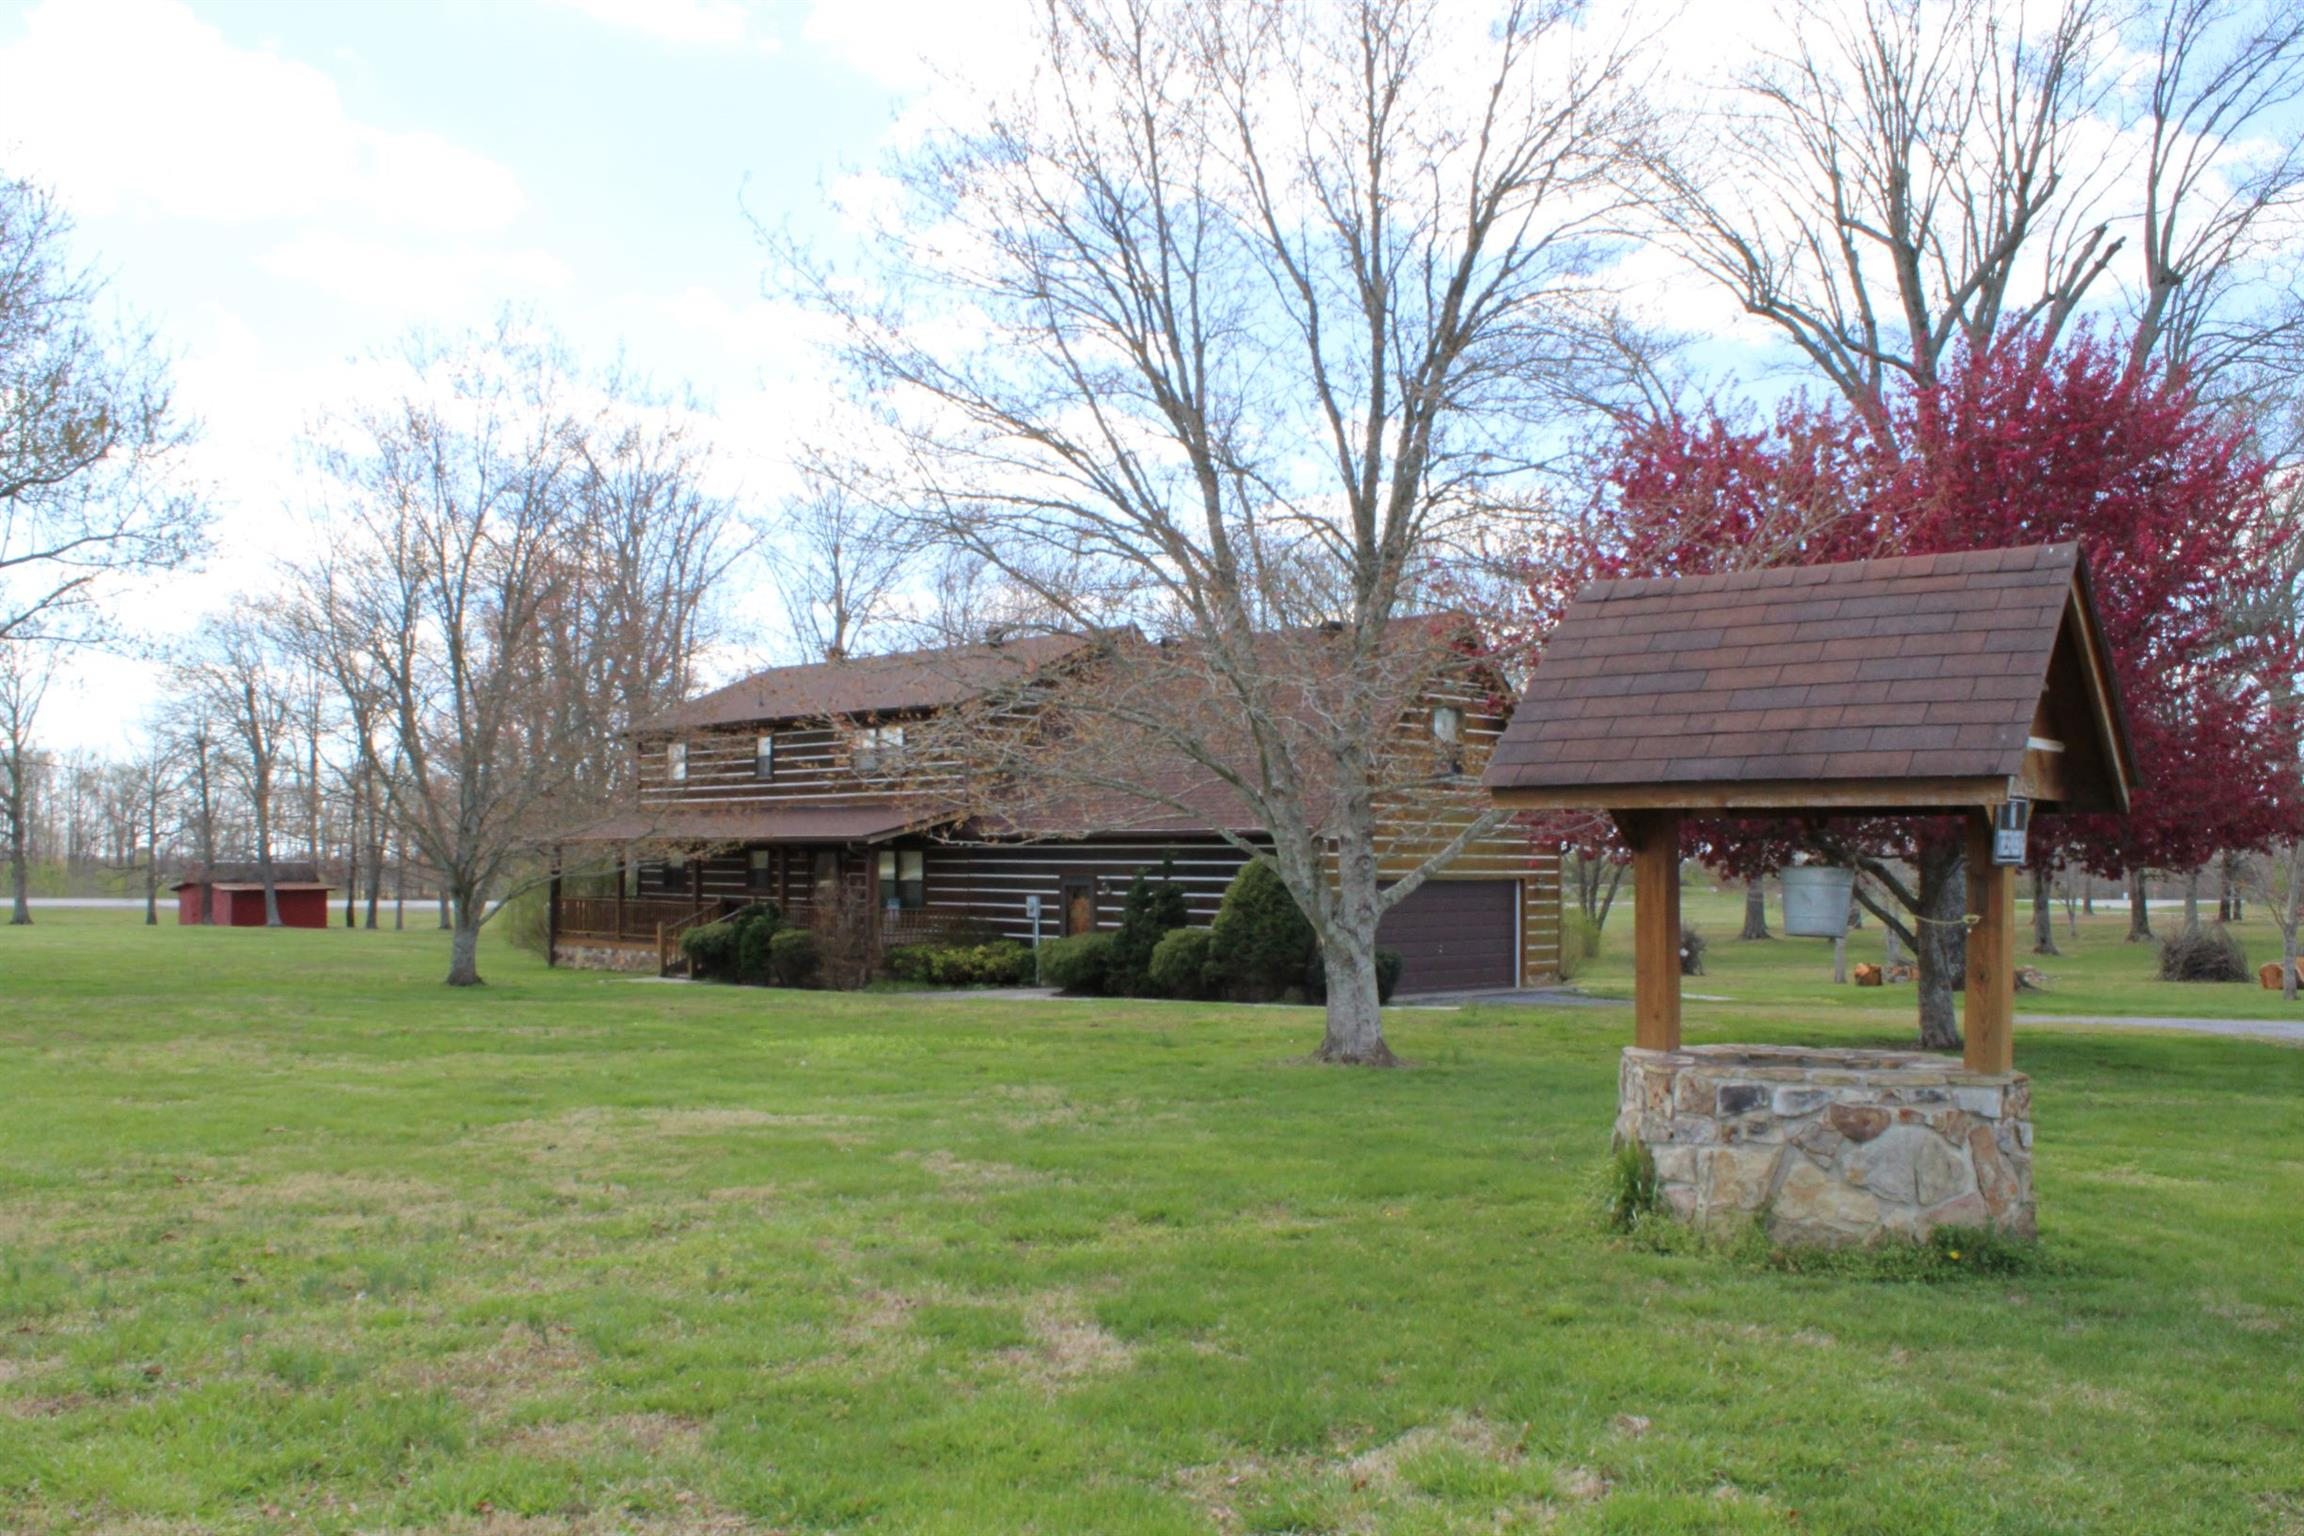 398 Mullican Rd, McMinnville, TN 37110 - McMinnville, TN real estate listing